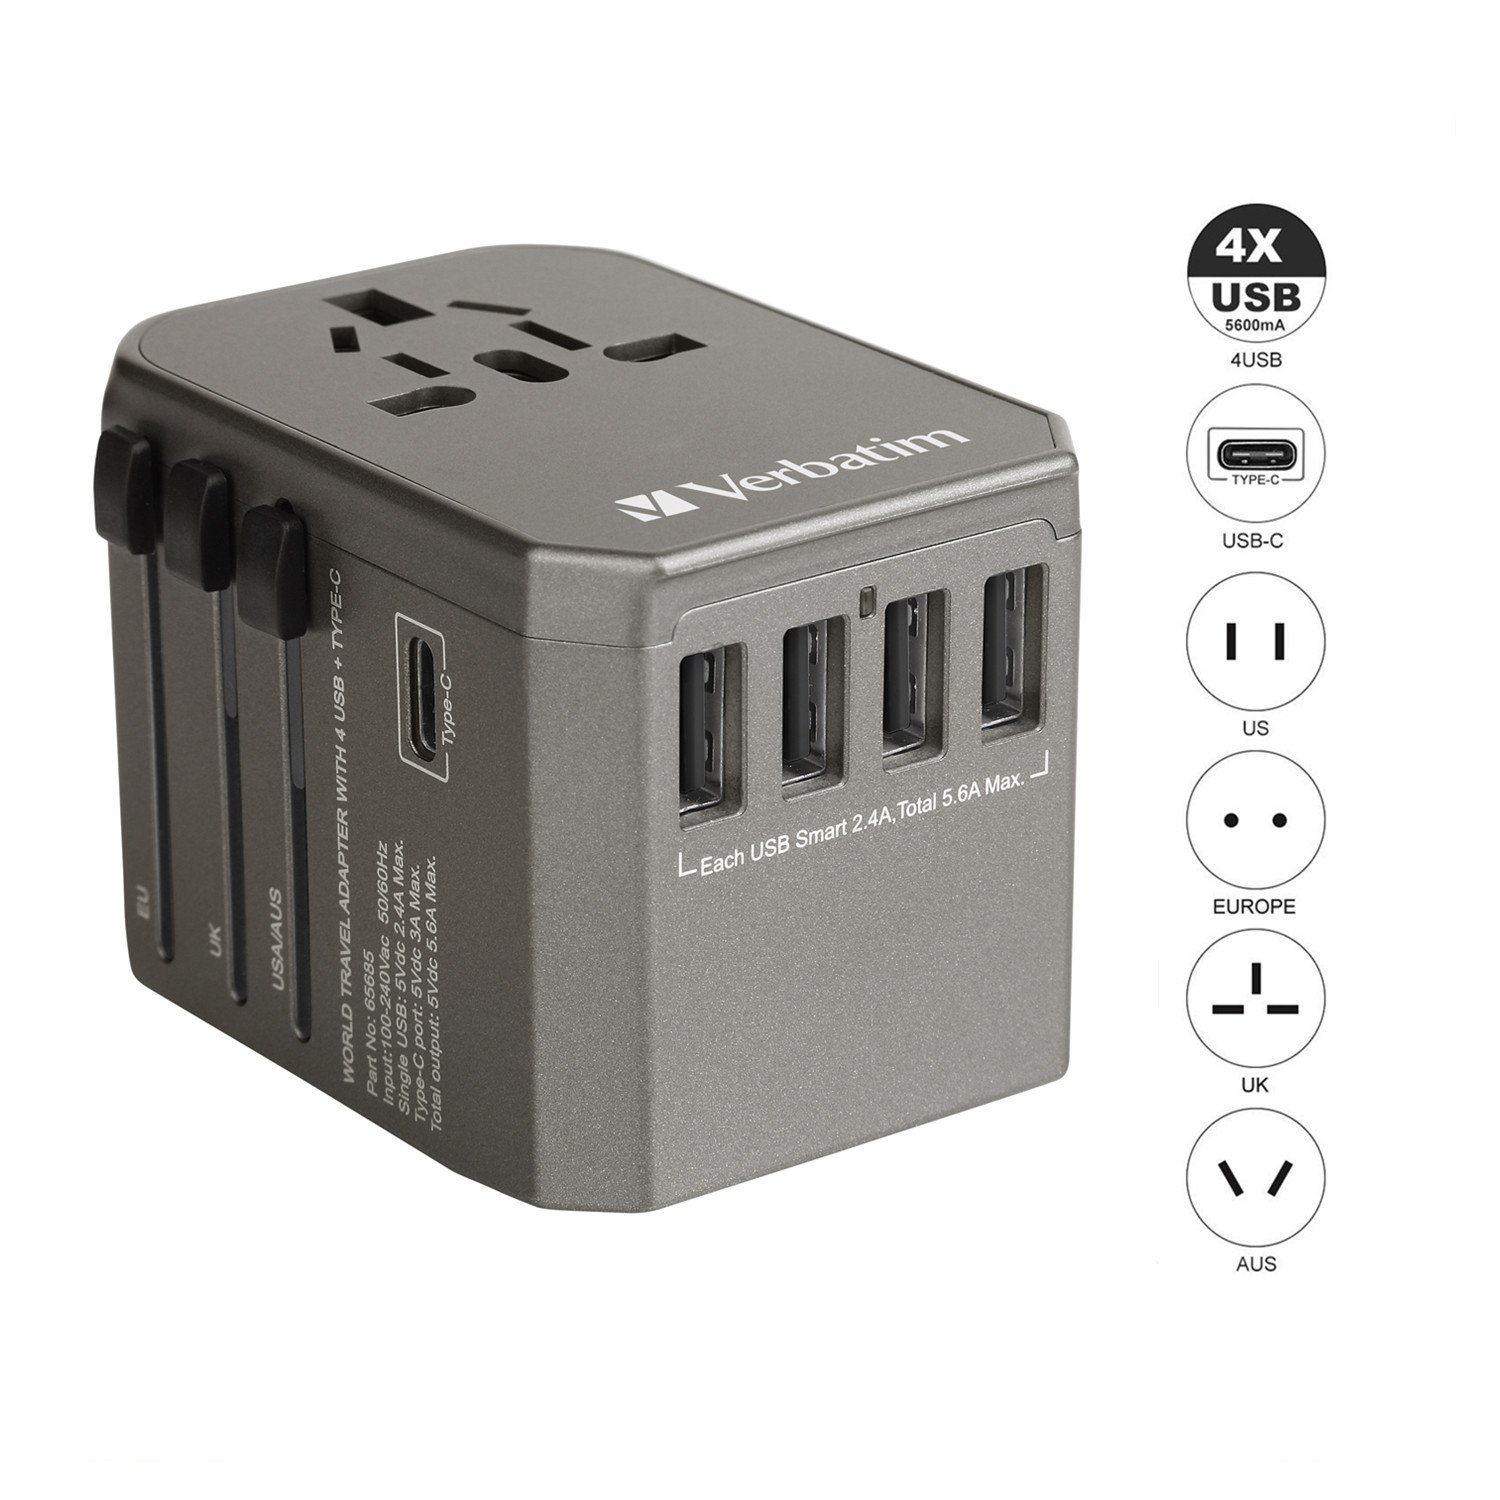 World Travel Power Adapter, All in one International Wall Charger AC Plug Adapter for USA EU UK AUS iPhone iPad Android Samsung and More(Grey)